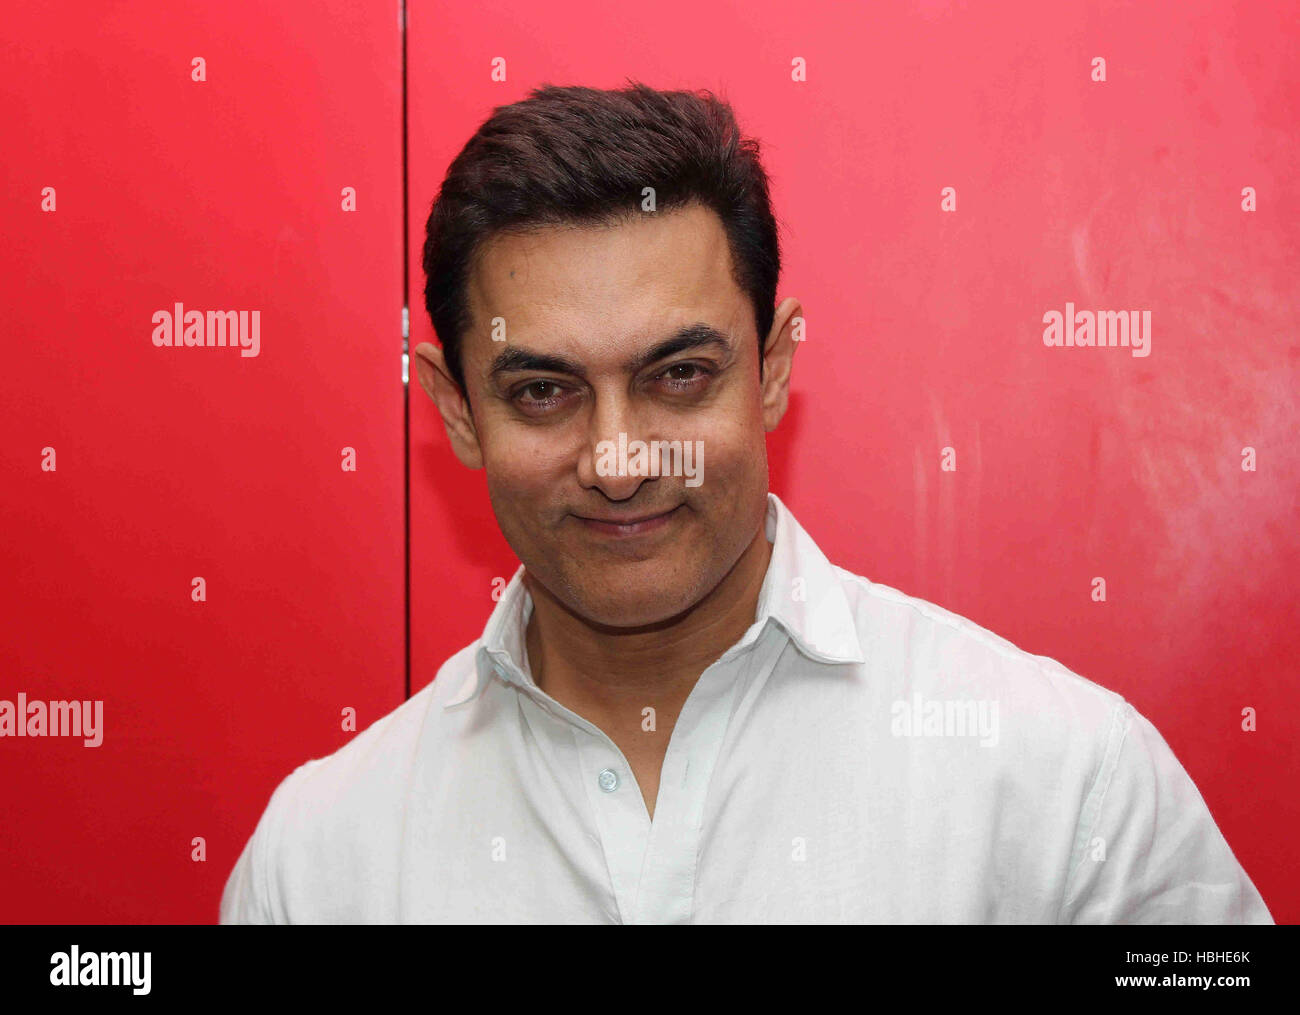 Bollywood actor Aamir Khan during promotion of film PK in Mumbai, India - sms 355194 - Stock Image